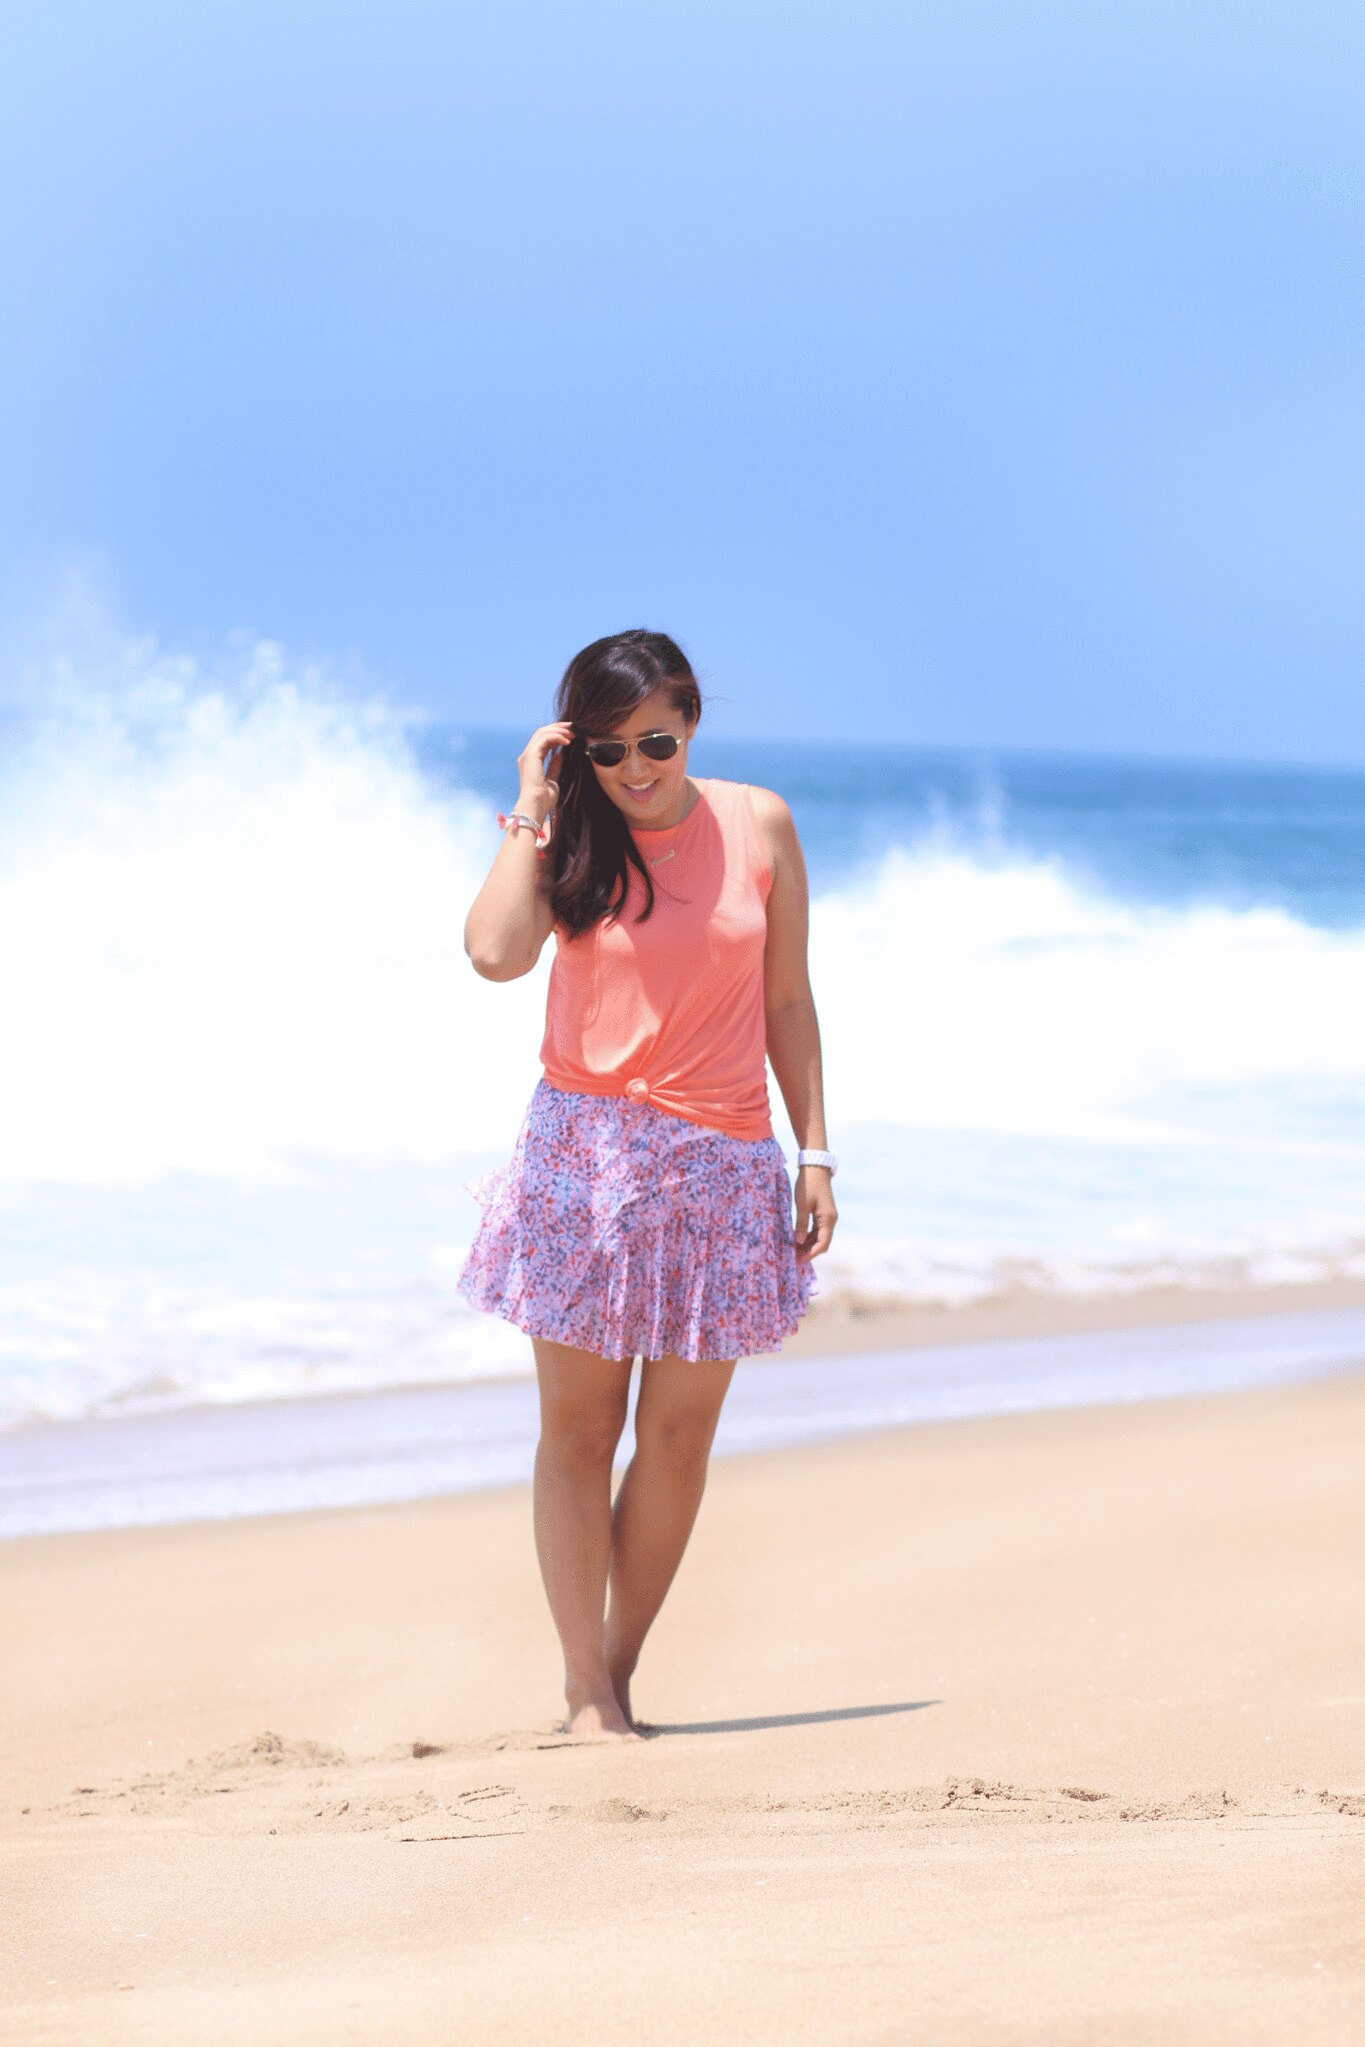 simplyxclassic, miriam gin, banana republic, summer bold colors, fashion blogger, orange county